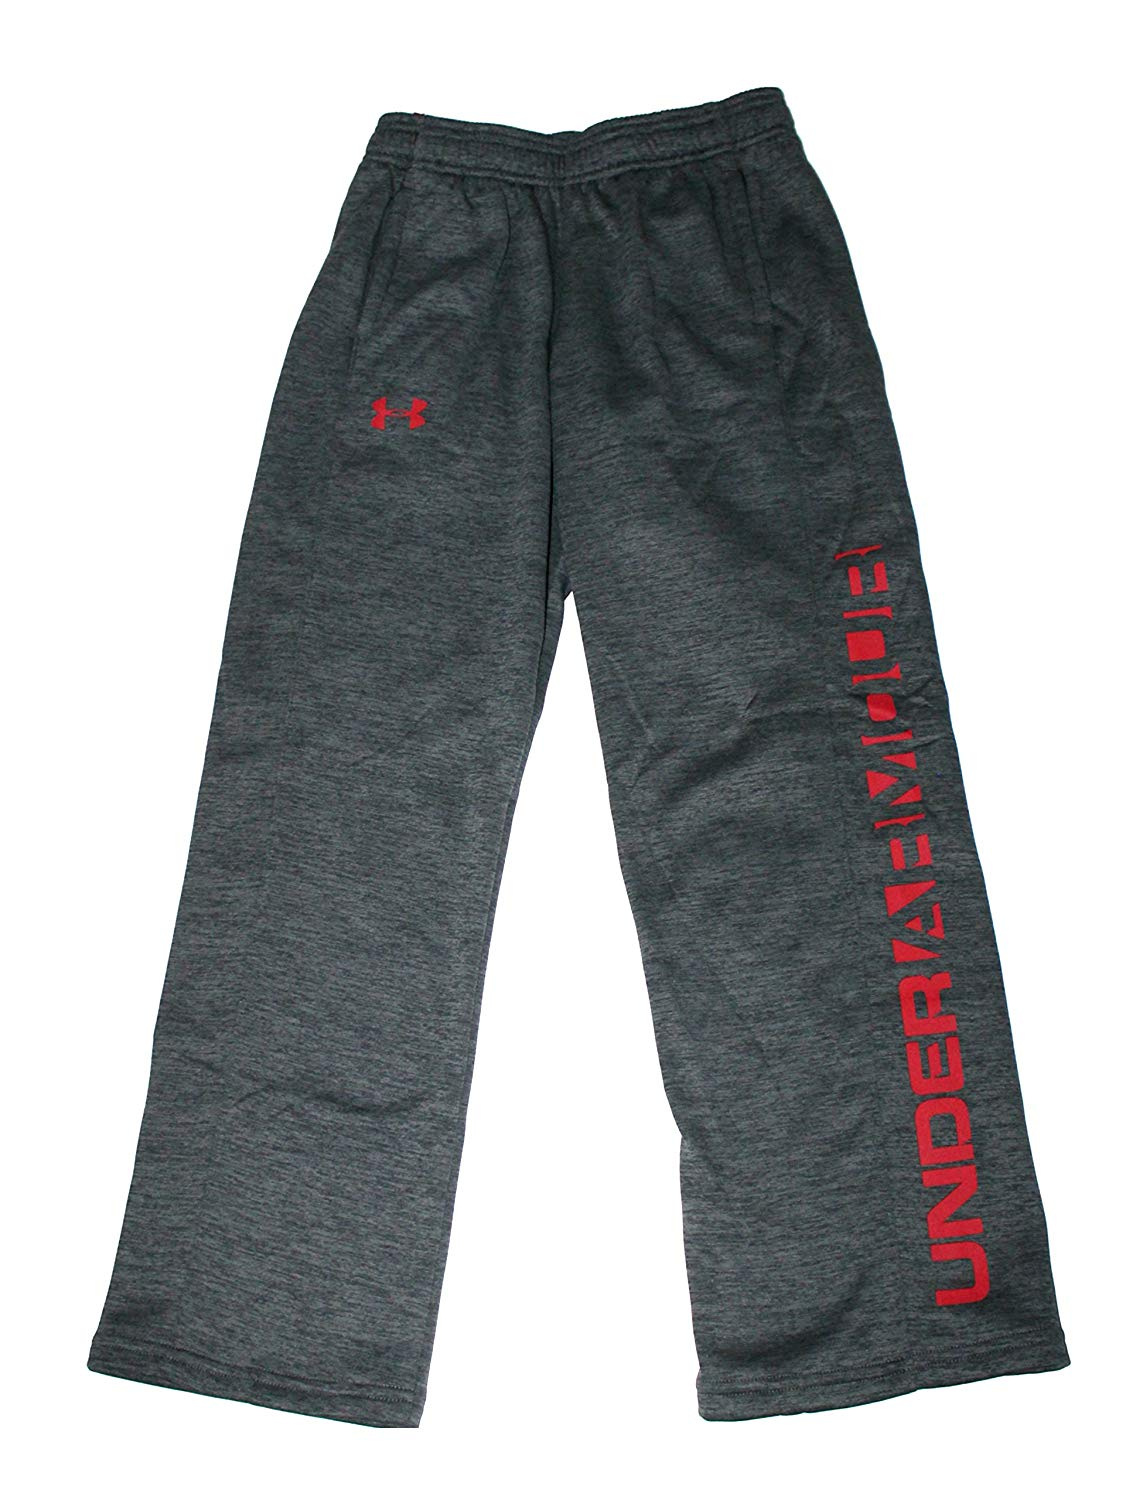 Under Armour Youth Boys Storm Athletic Fleece Lined Pants Size S